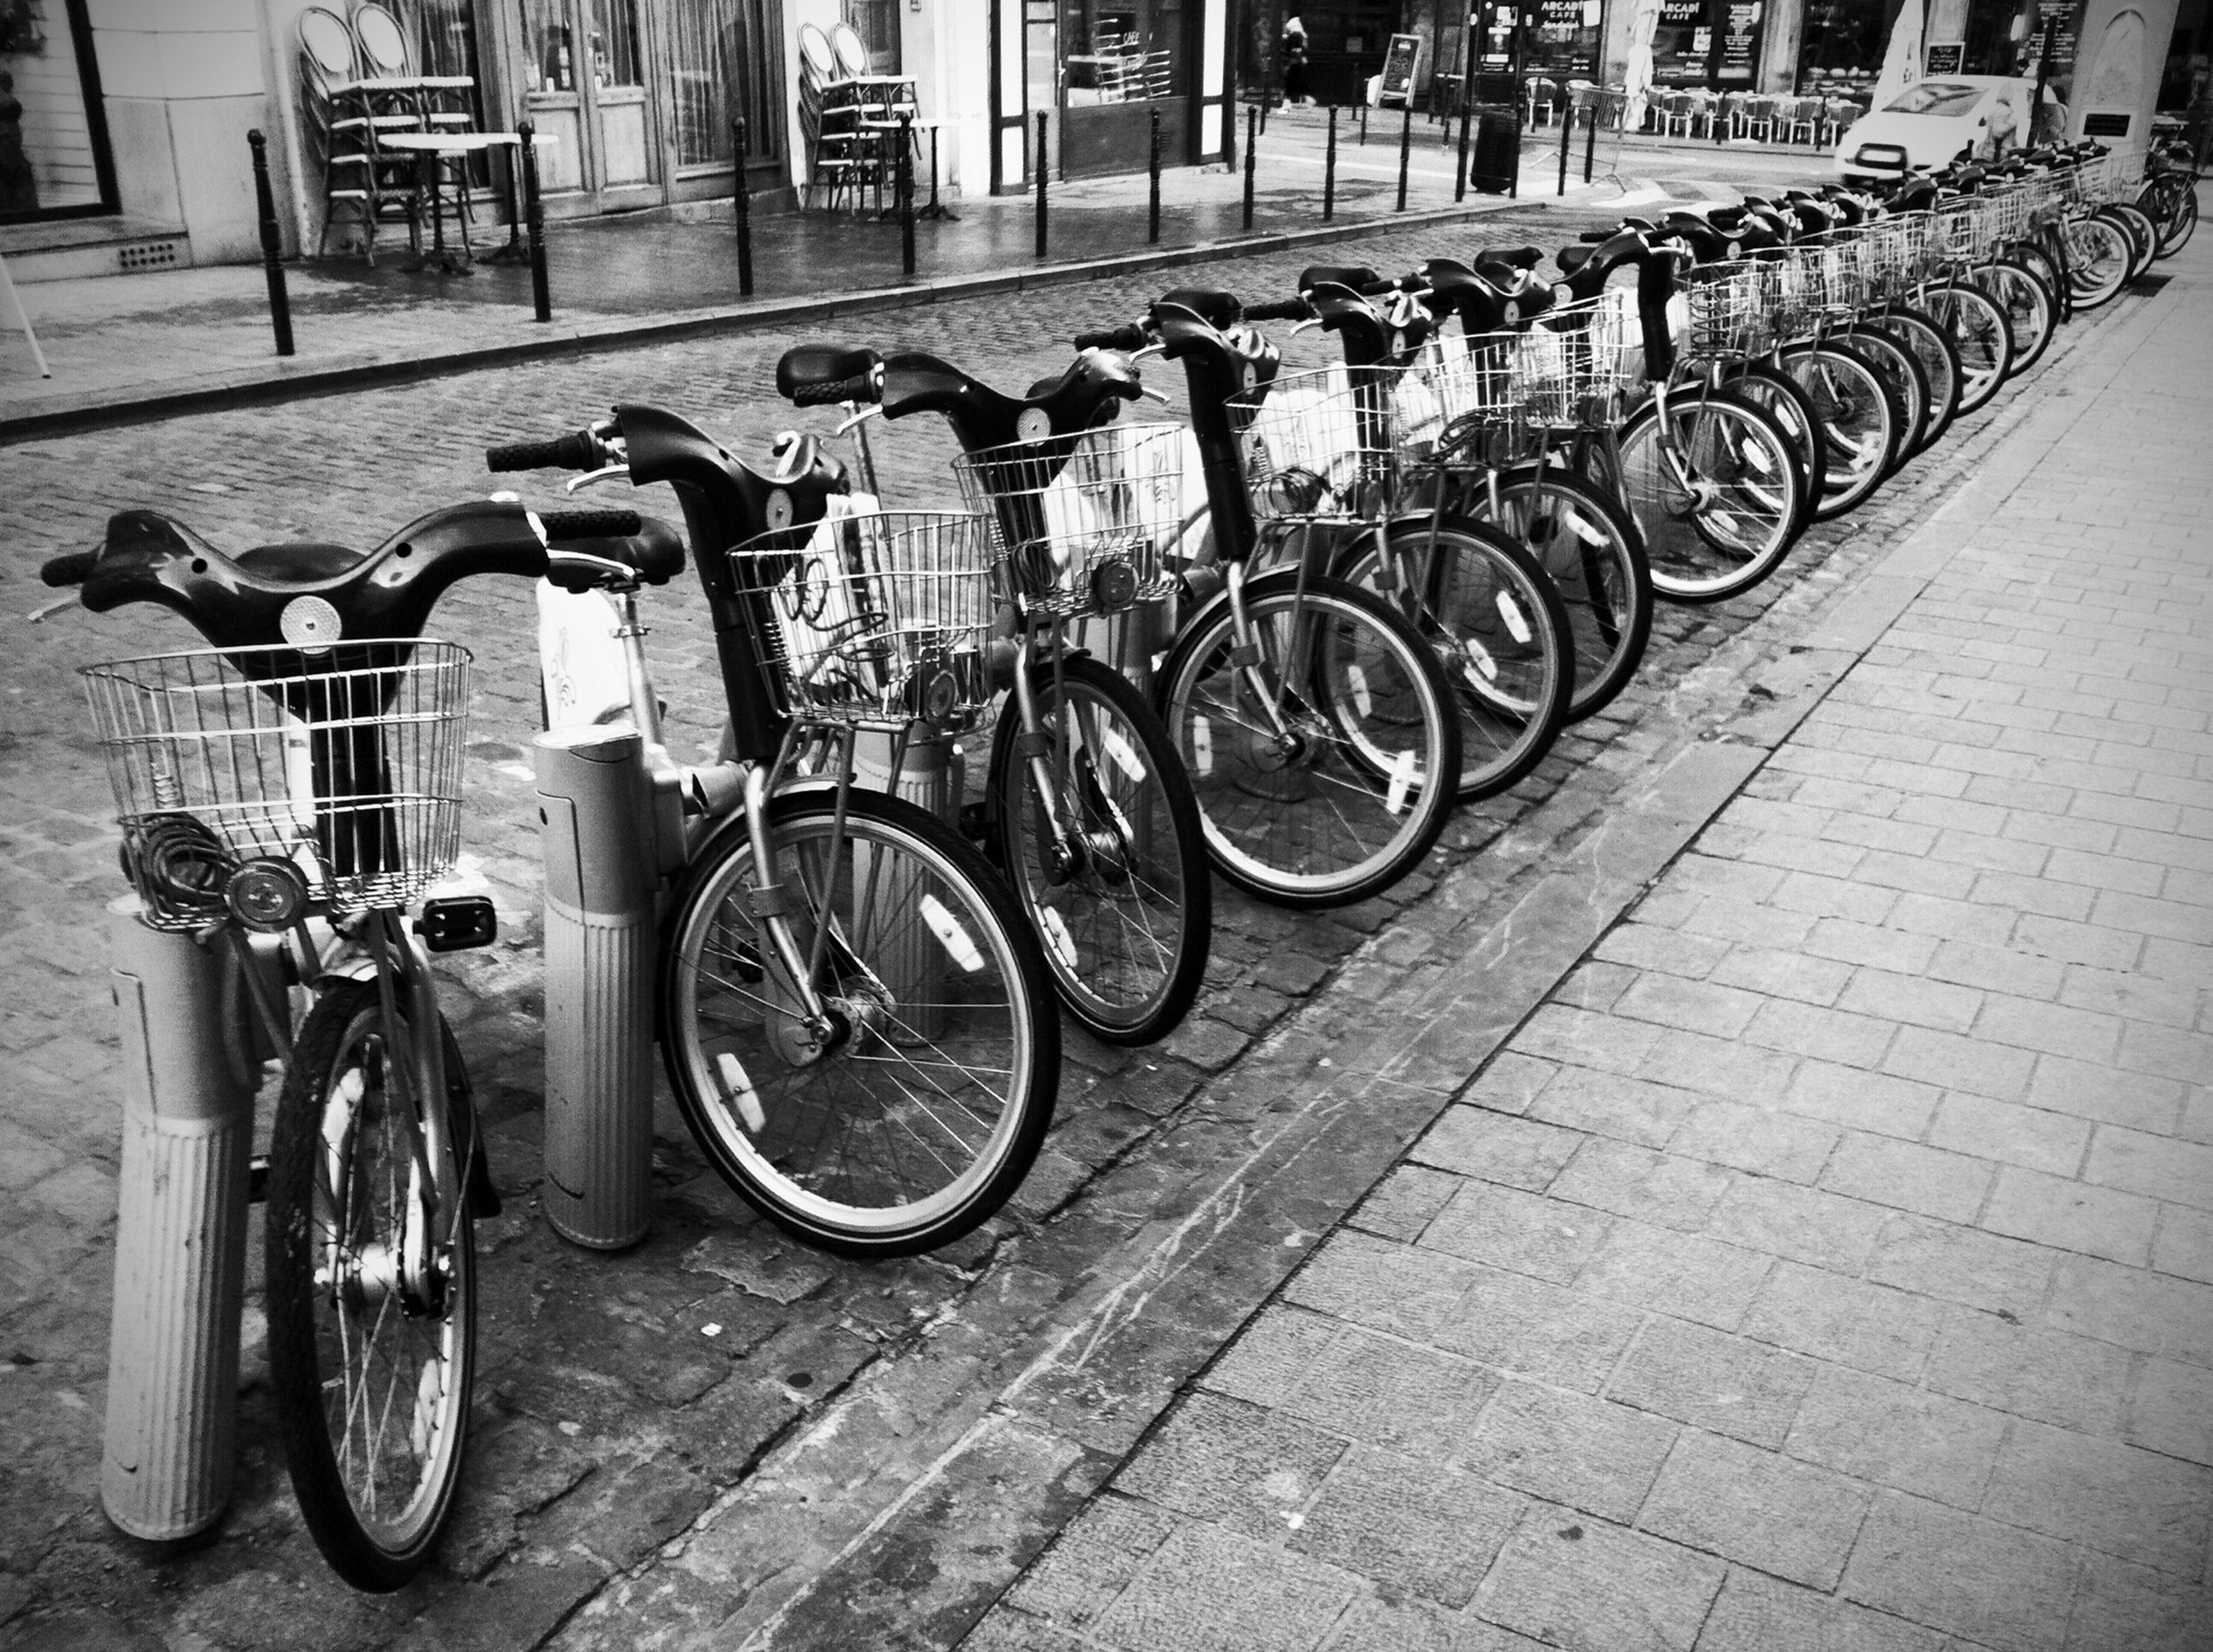 bicycle, transportation, mode of transport, land vehicle, parked, stationary, parking, street, built structure, architecture, building exterior, sidewalk, in a row, outdoors, wheel, day, railing, city, parking lot, travel